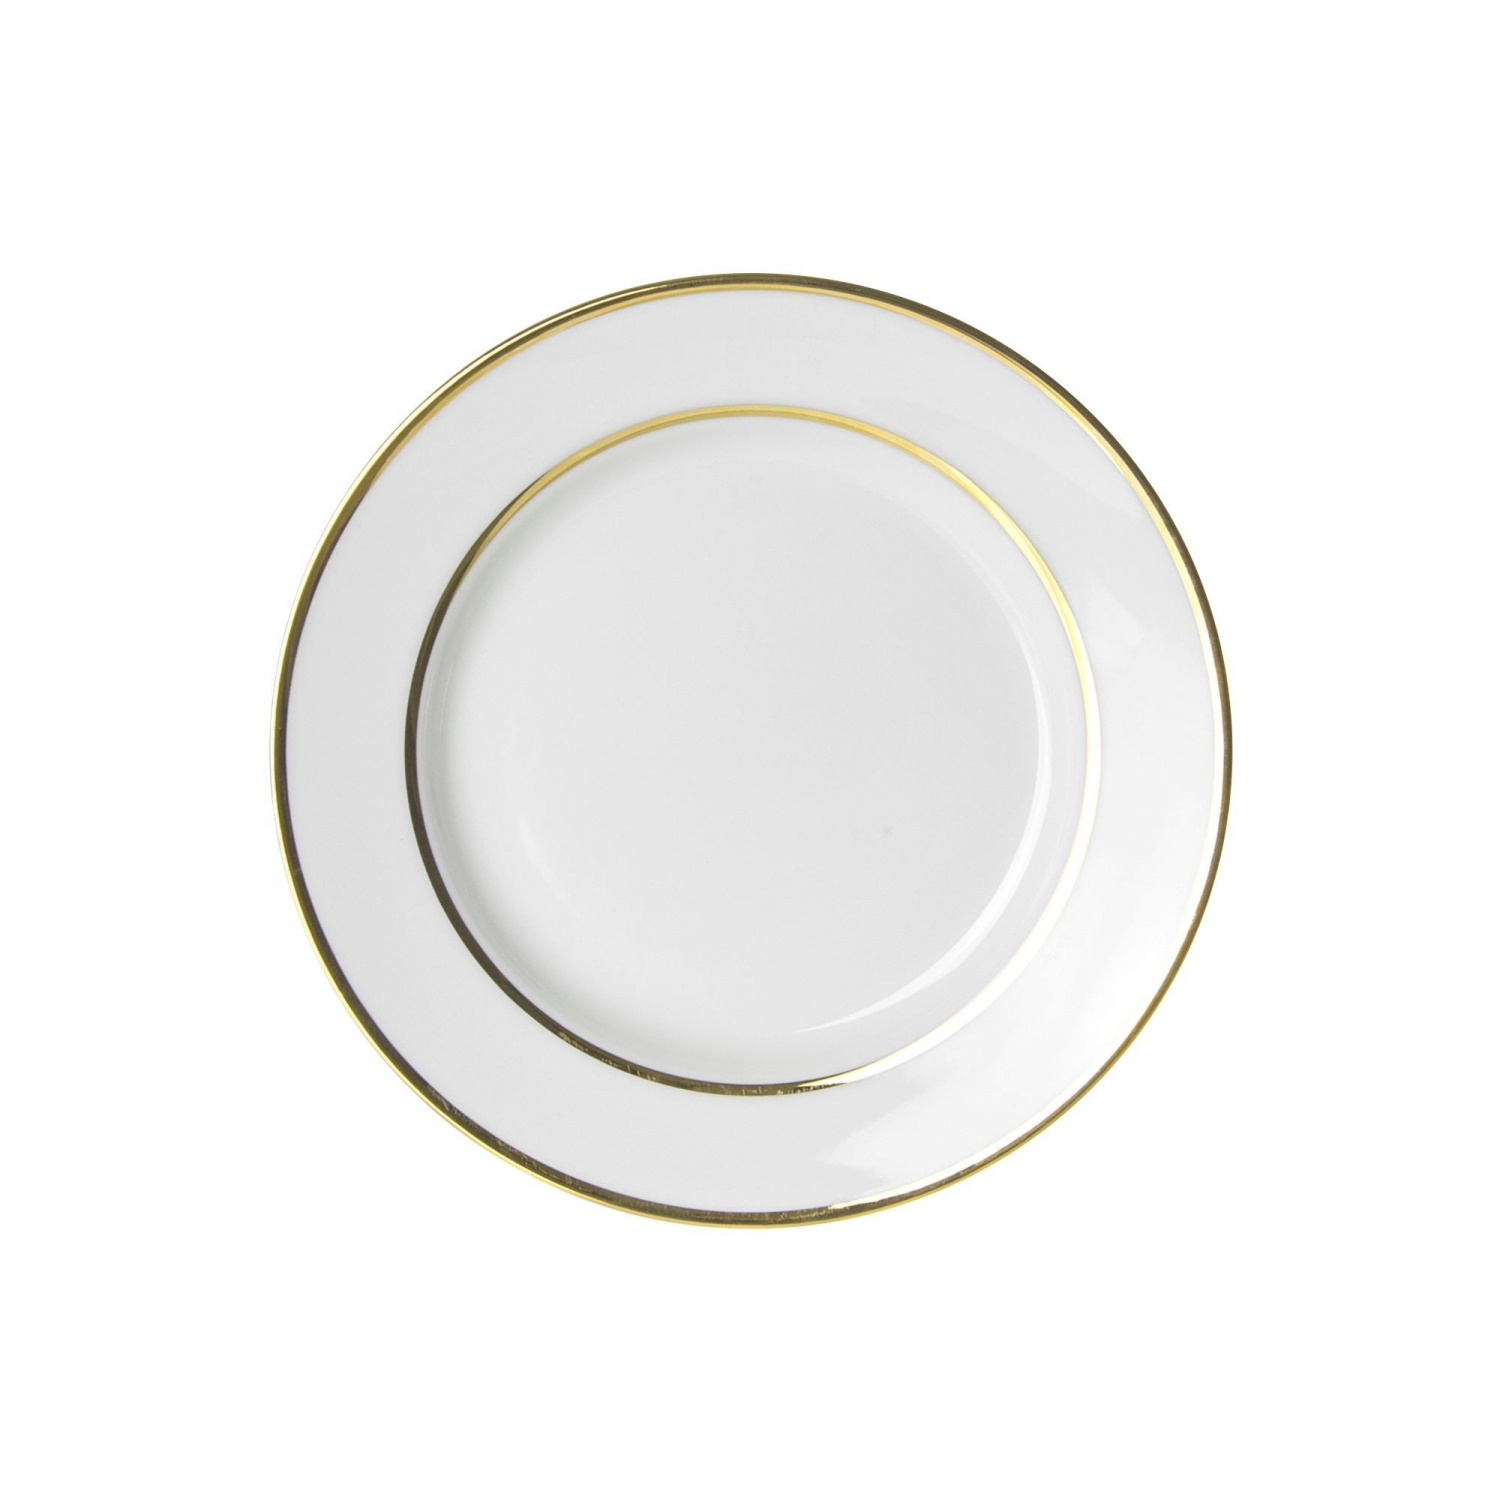 "10 Strawberry Street GLD0004 7-3/4"" Double Gold Line Salad / Dessert Plate"